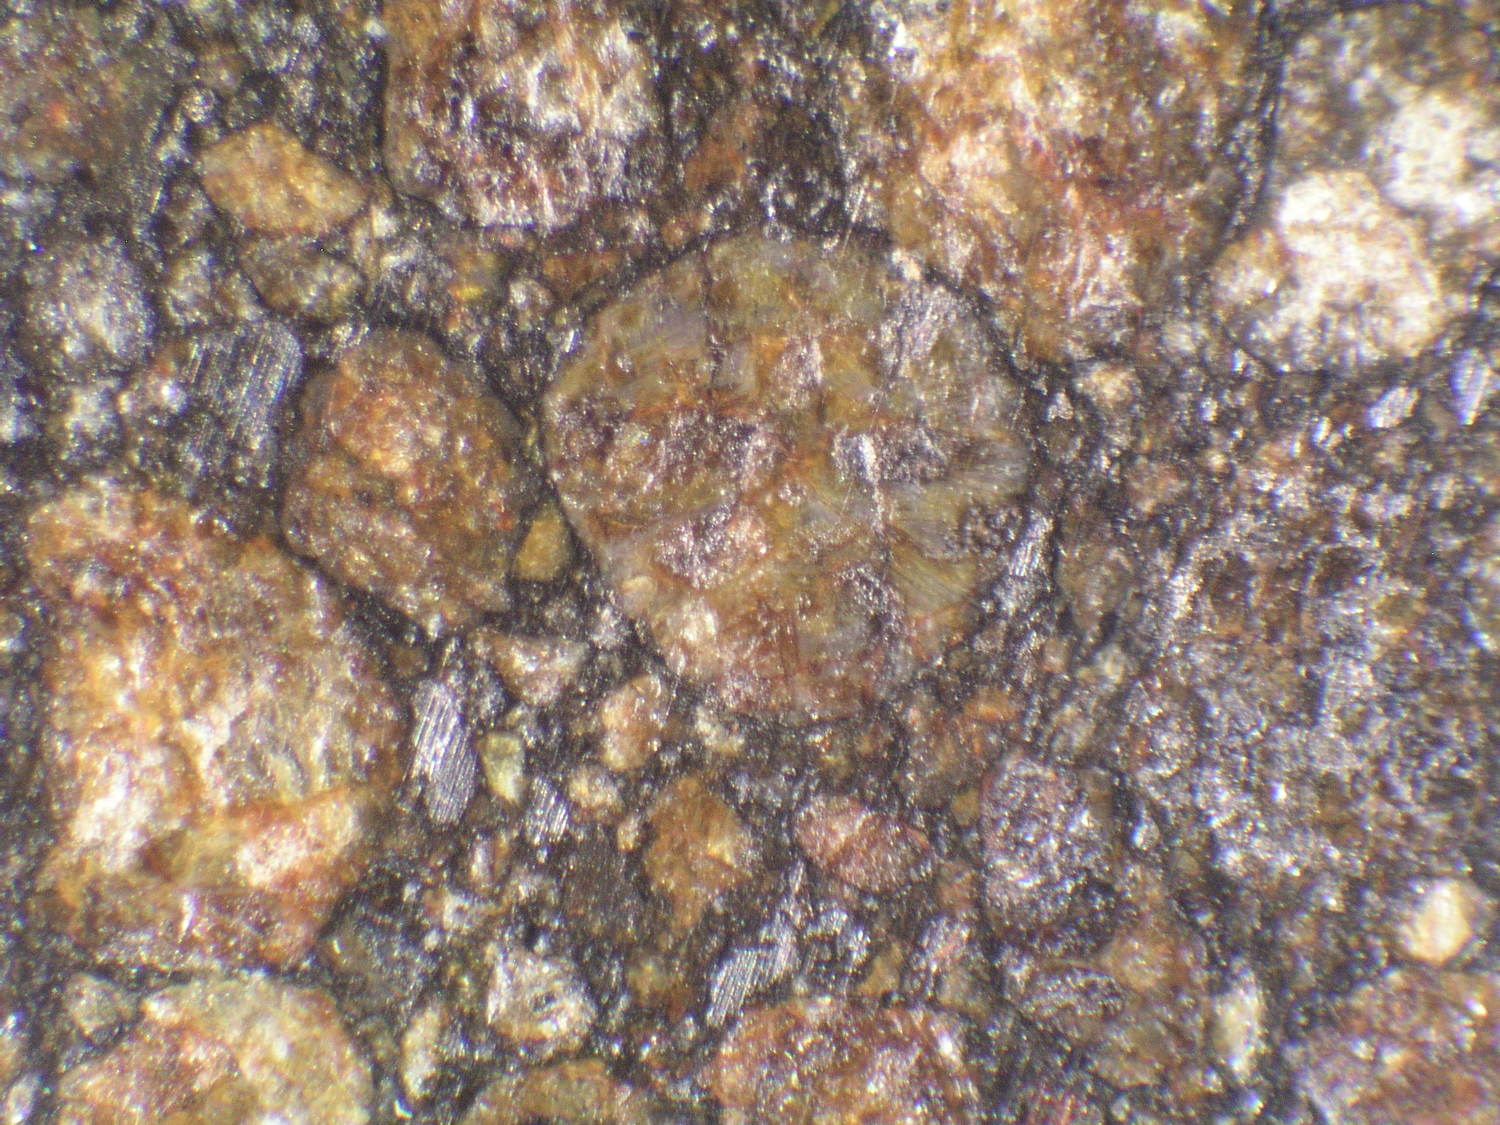 Photo Larry Atkins - meteorites under the scope study - misc.